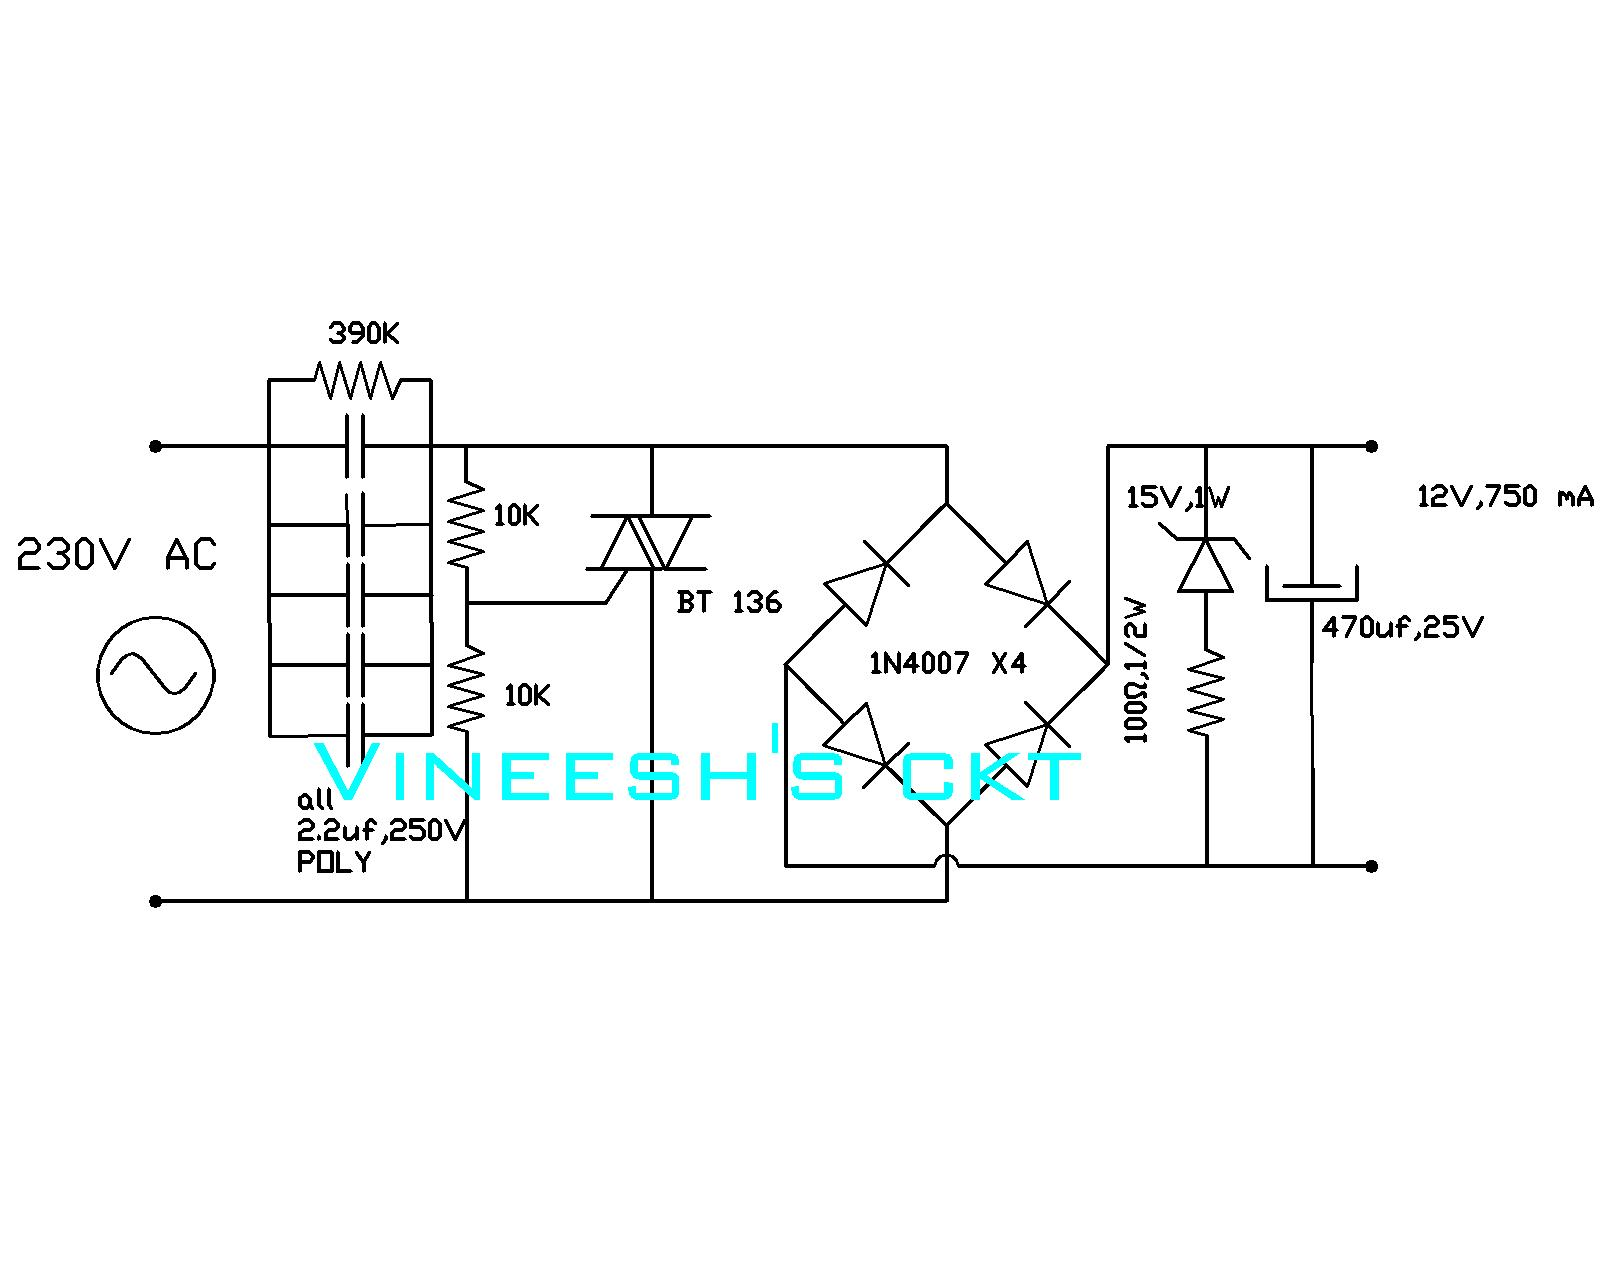 Simple Circuits Vineetron Transformerless Power Supply